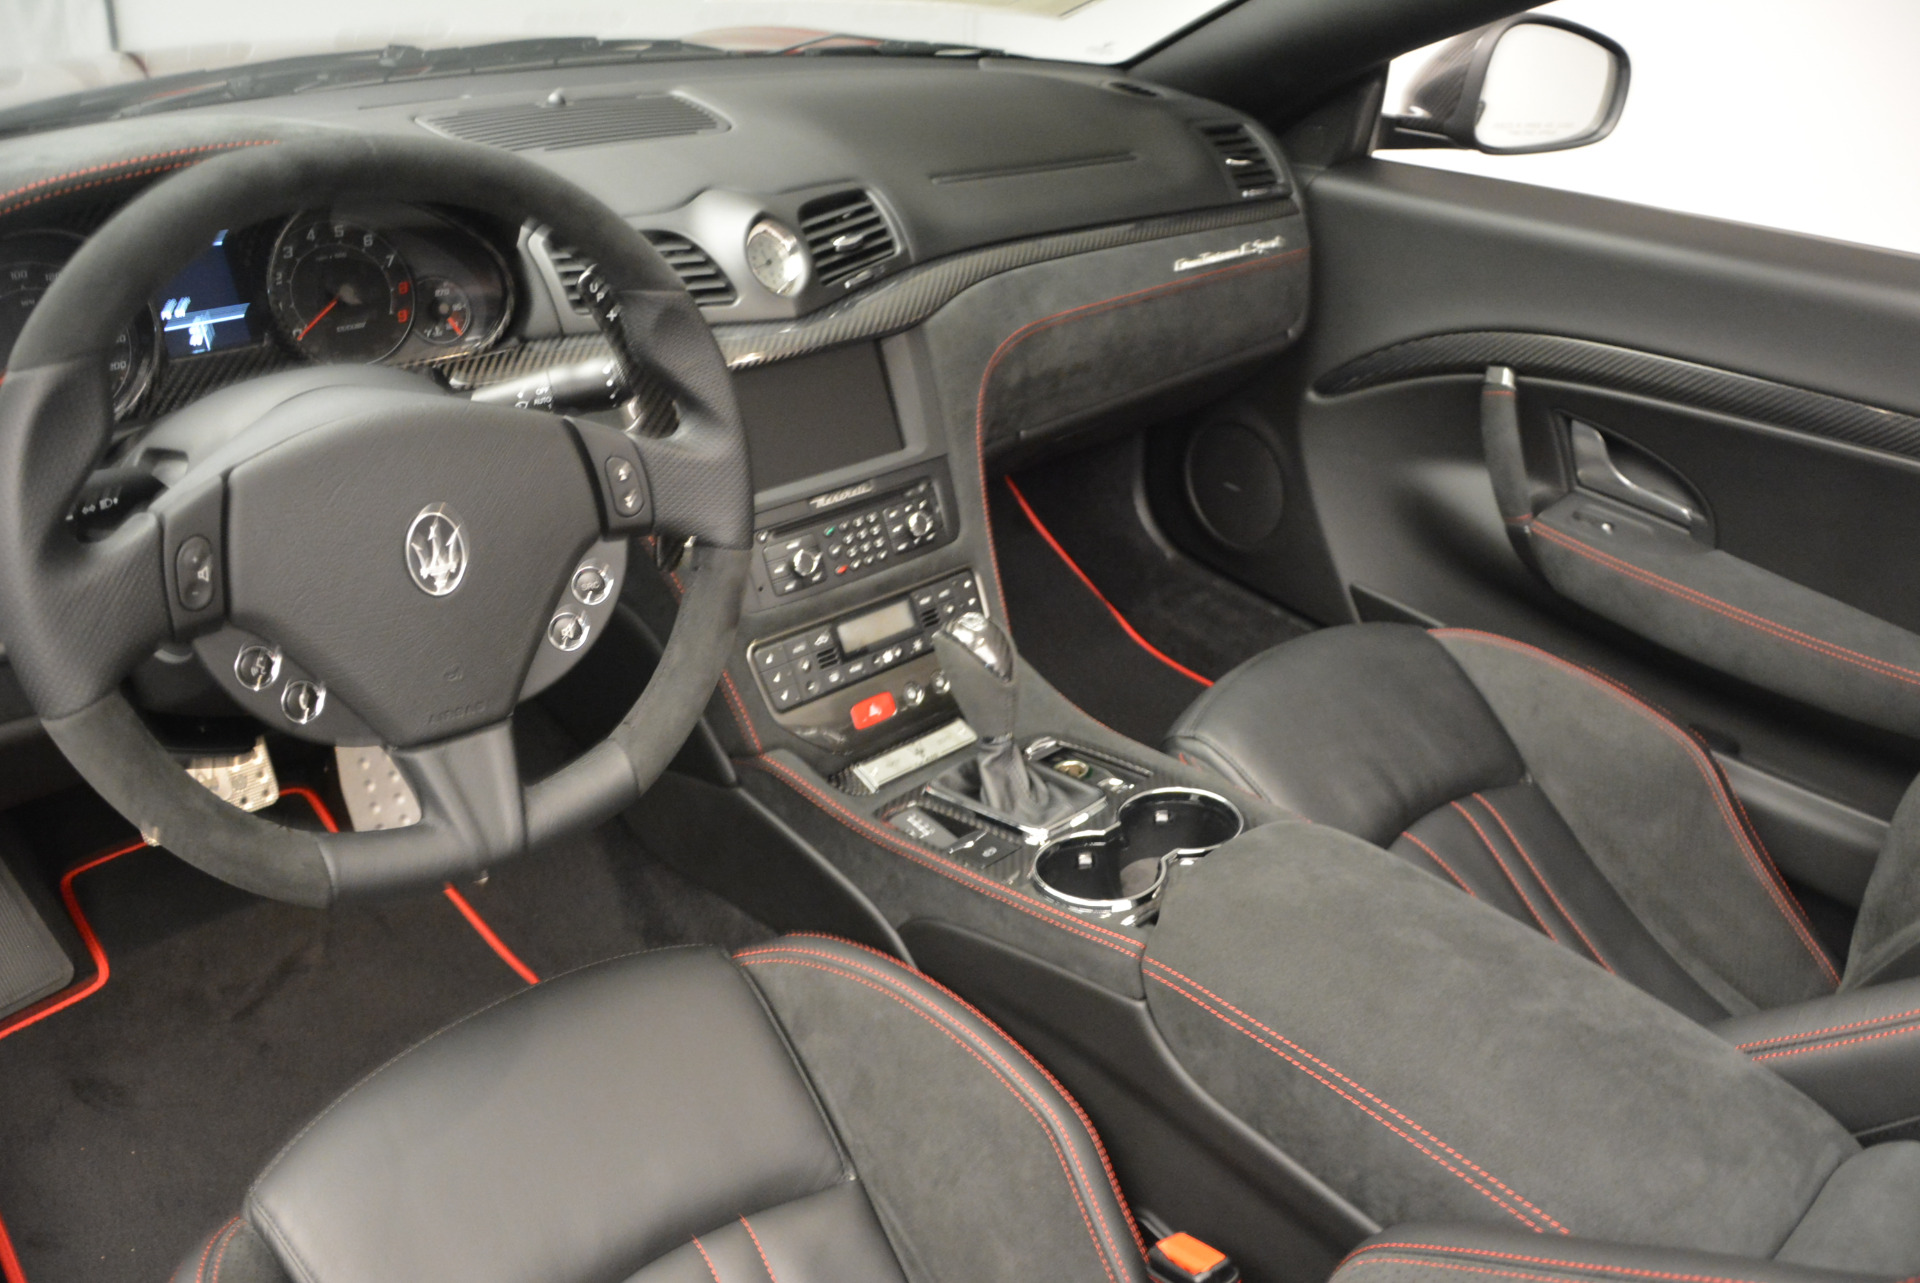 Maserati Granturismo Interior 2017 - Best Accessories Home ...